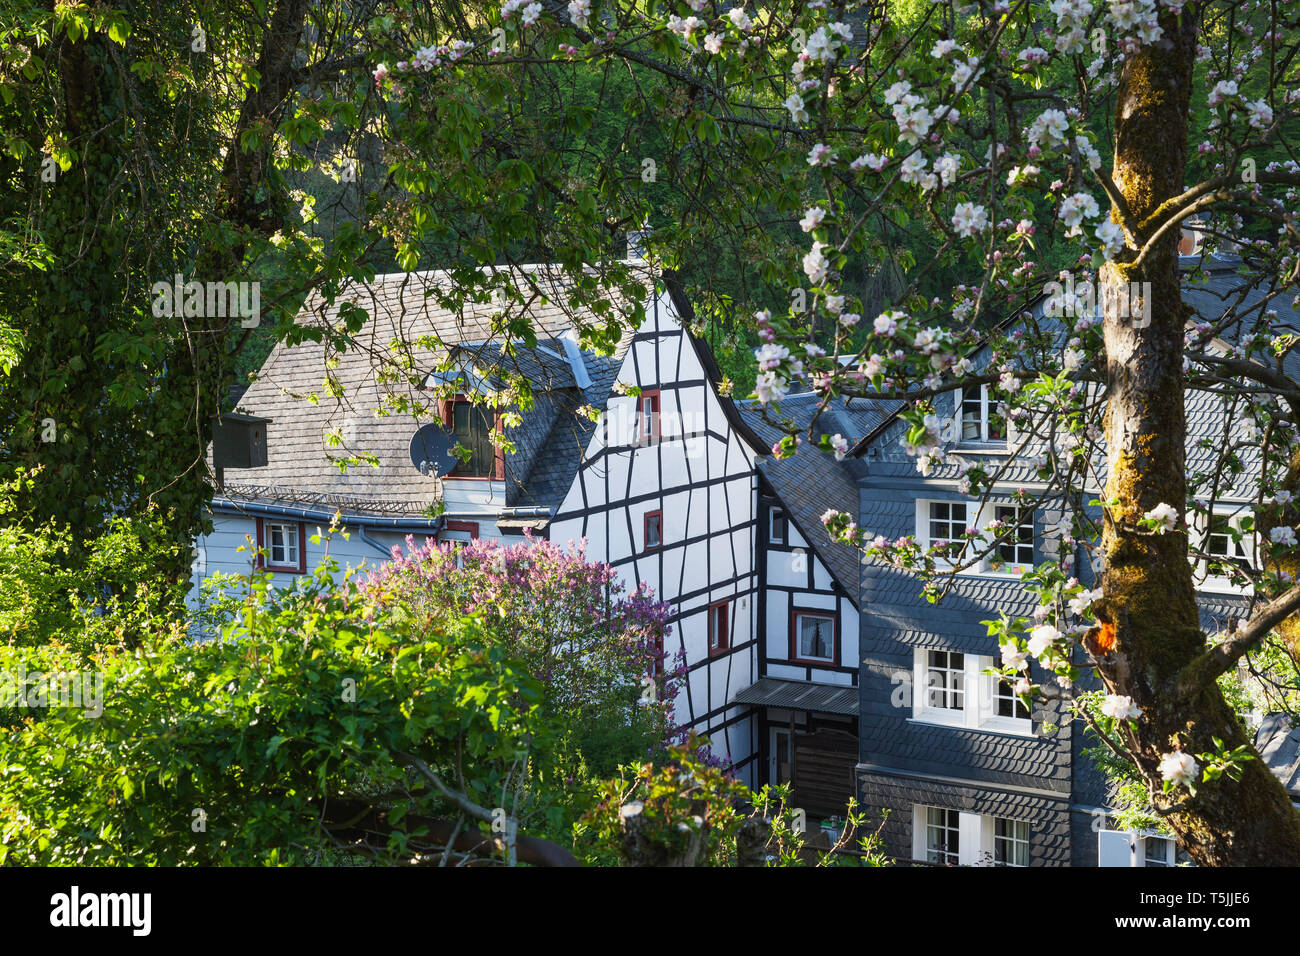 Germany, North Rhine-Westphalia, Eifel, Monschau, spring, apple blossom, Flieder blossom, historic typical half-timbered house and typical house with - Stock Image